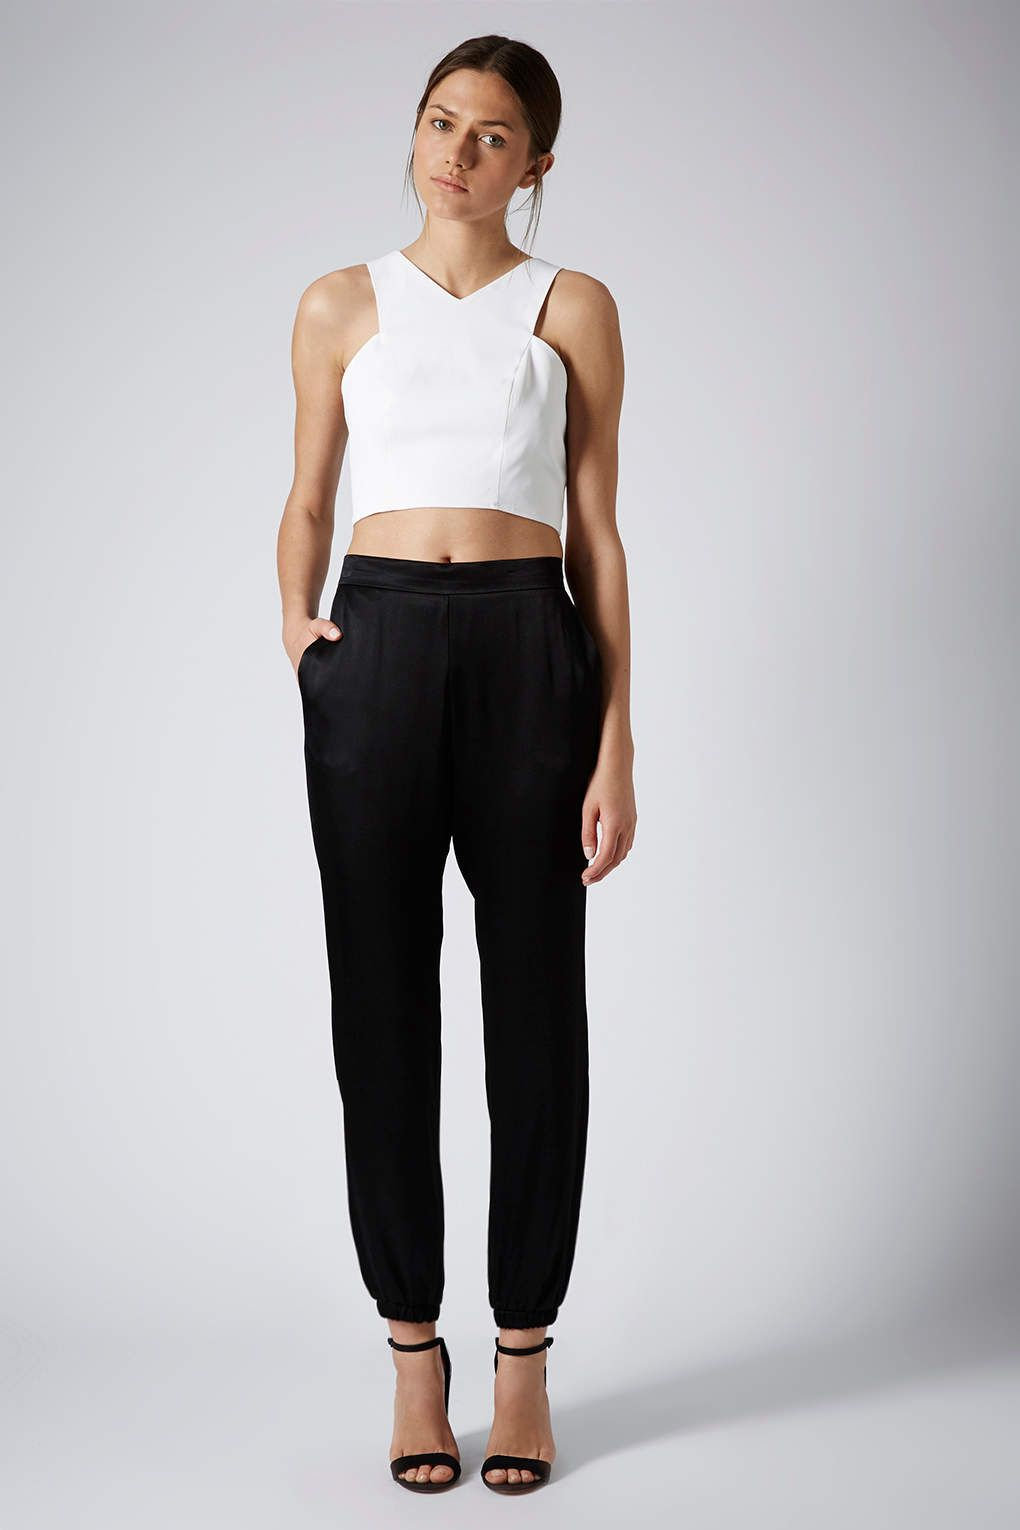 Formal Satin Joggers - Trousers & Leggings - Clothing ...